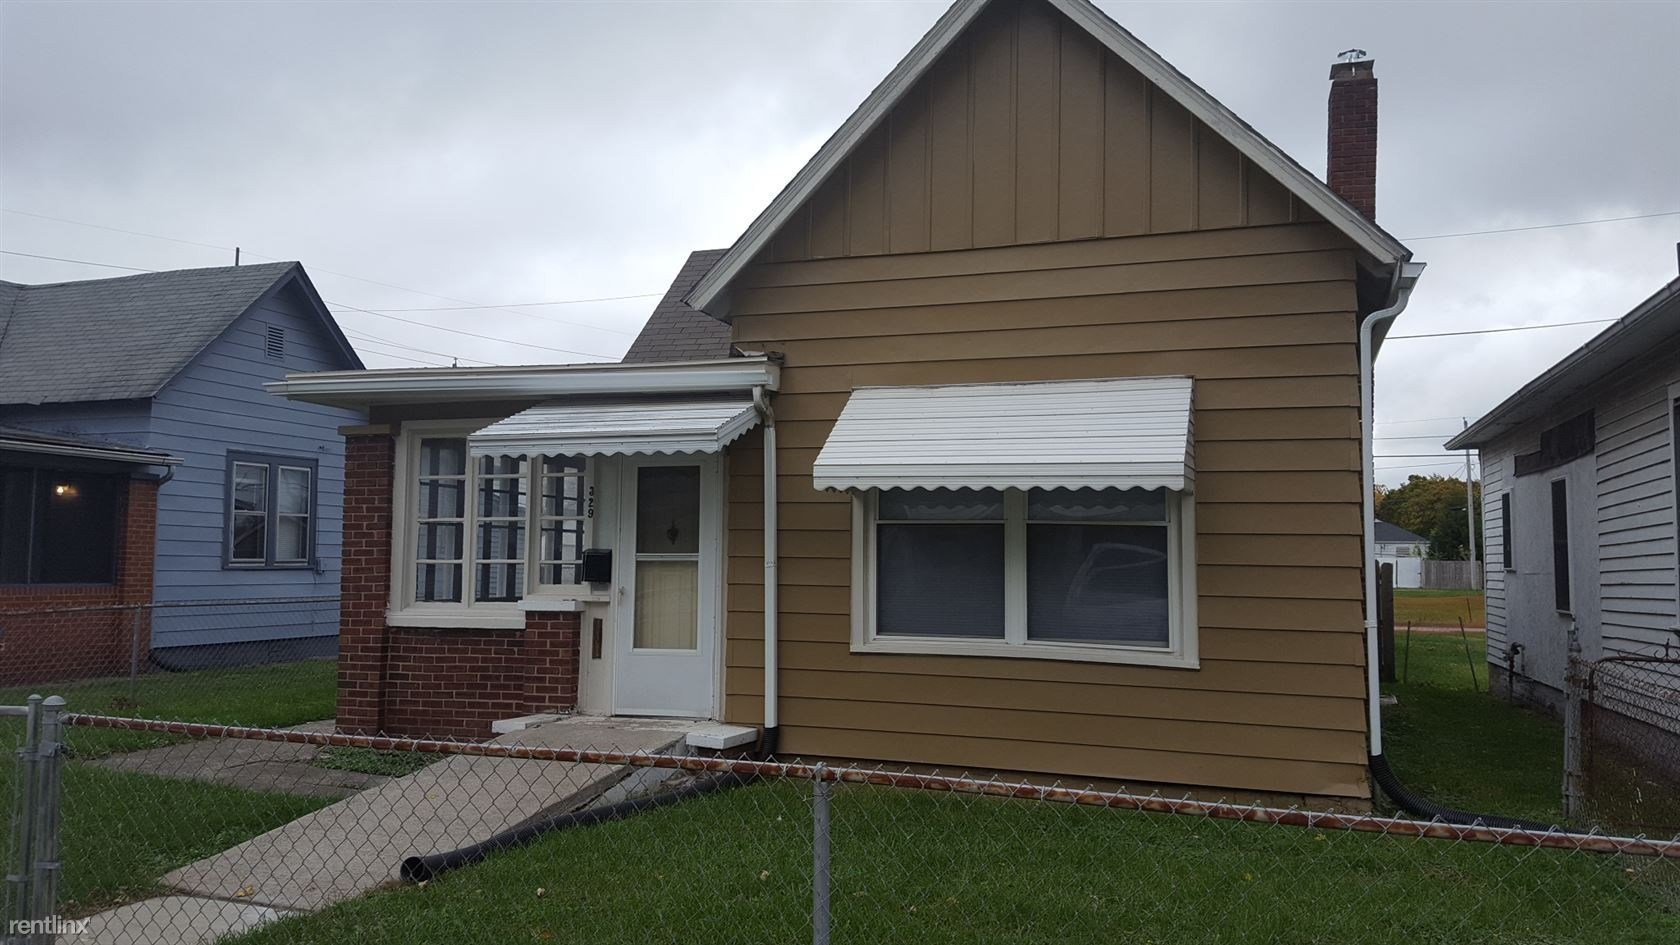 Best 329 S Hamilton Ave Indianapolis In 46201 3 Bedroom House For Rent For 695 Month Zumper With Pictures